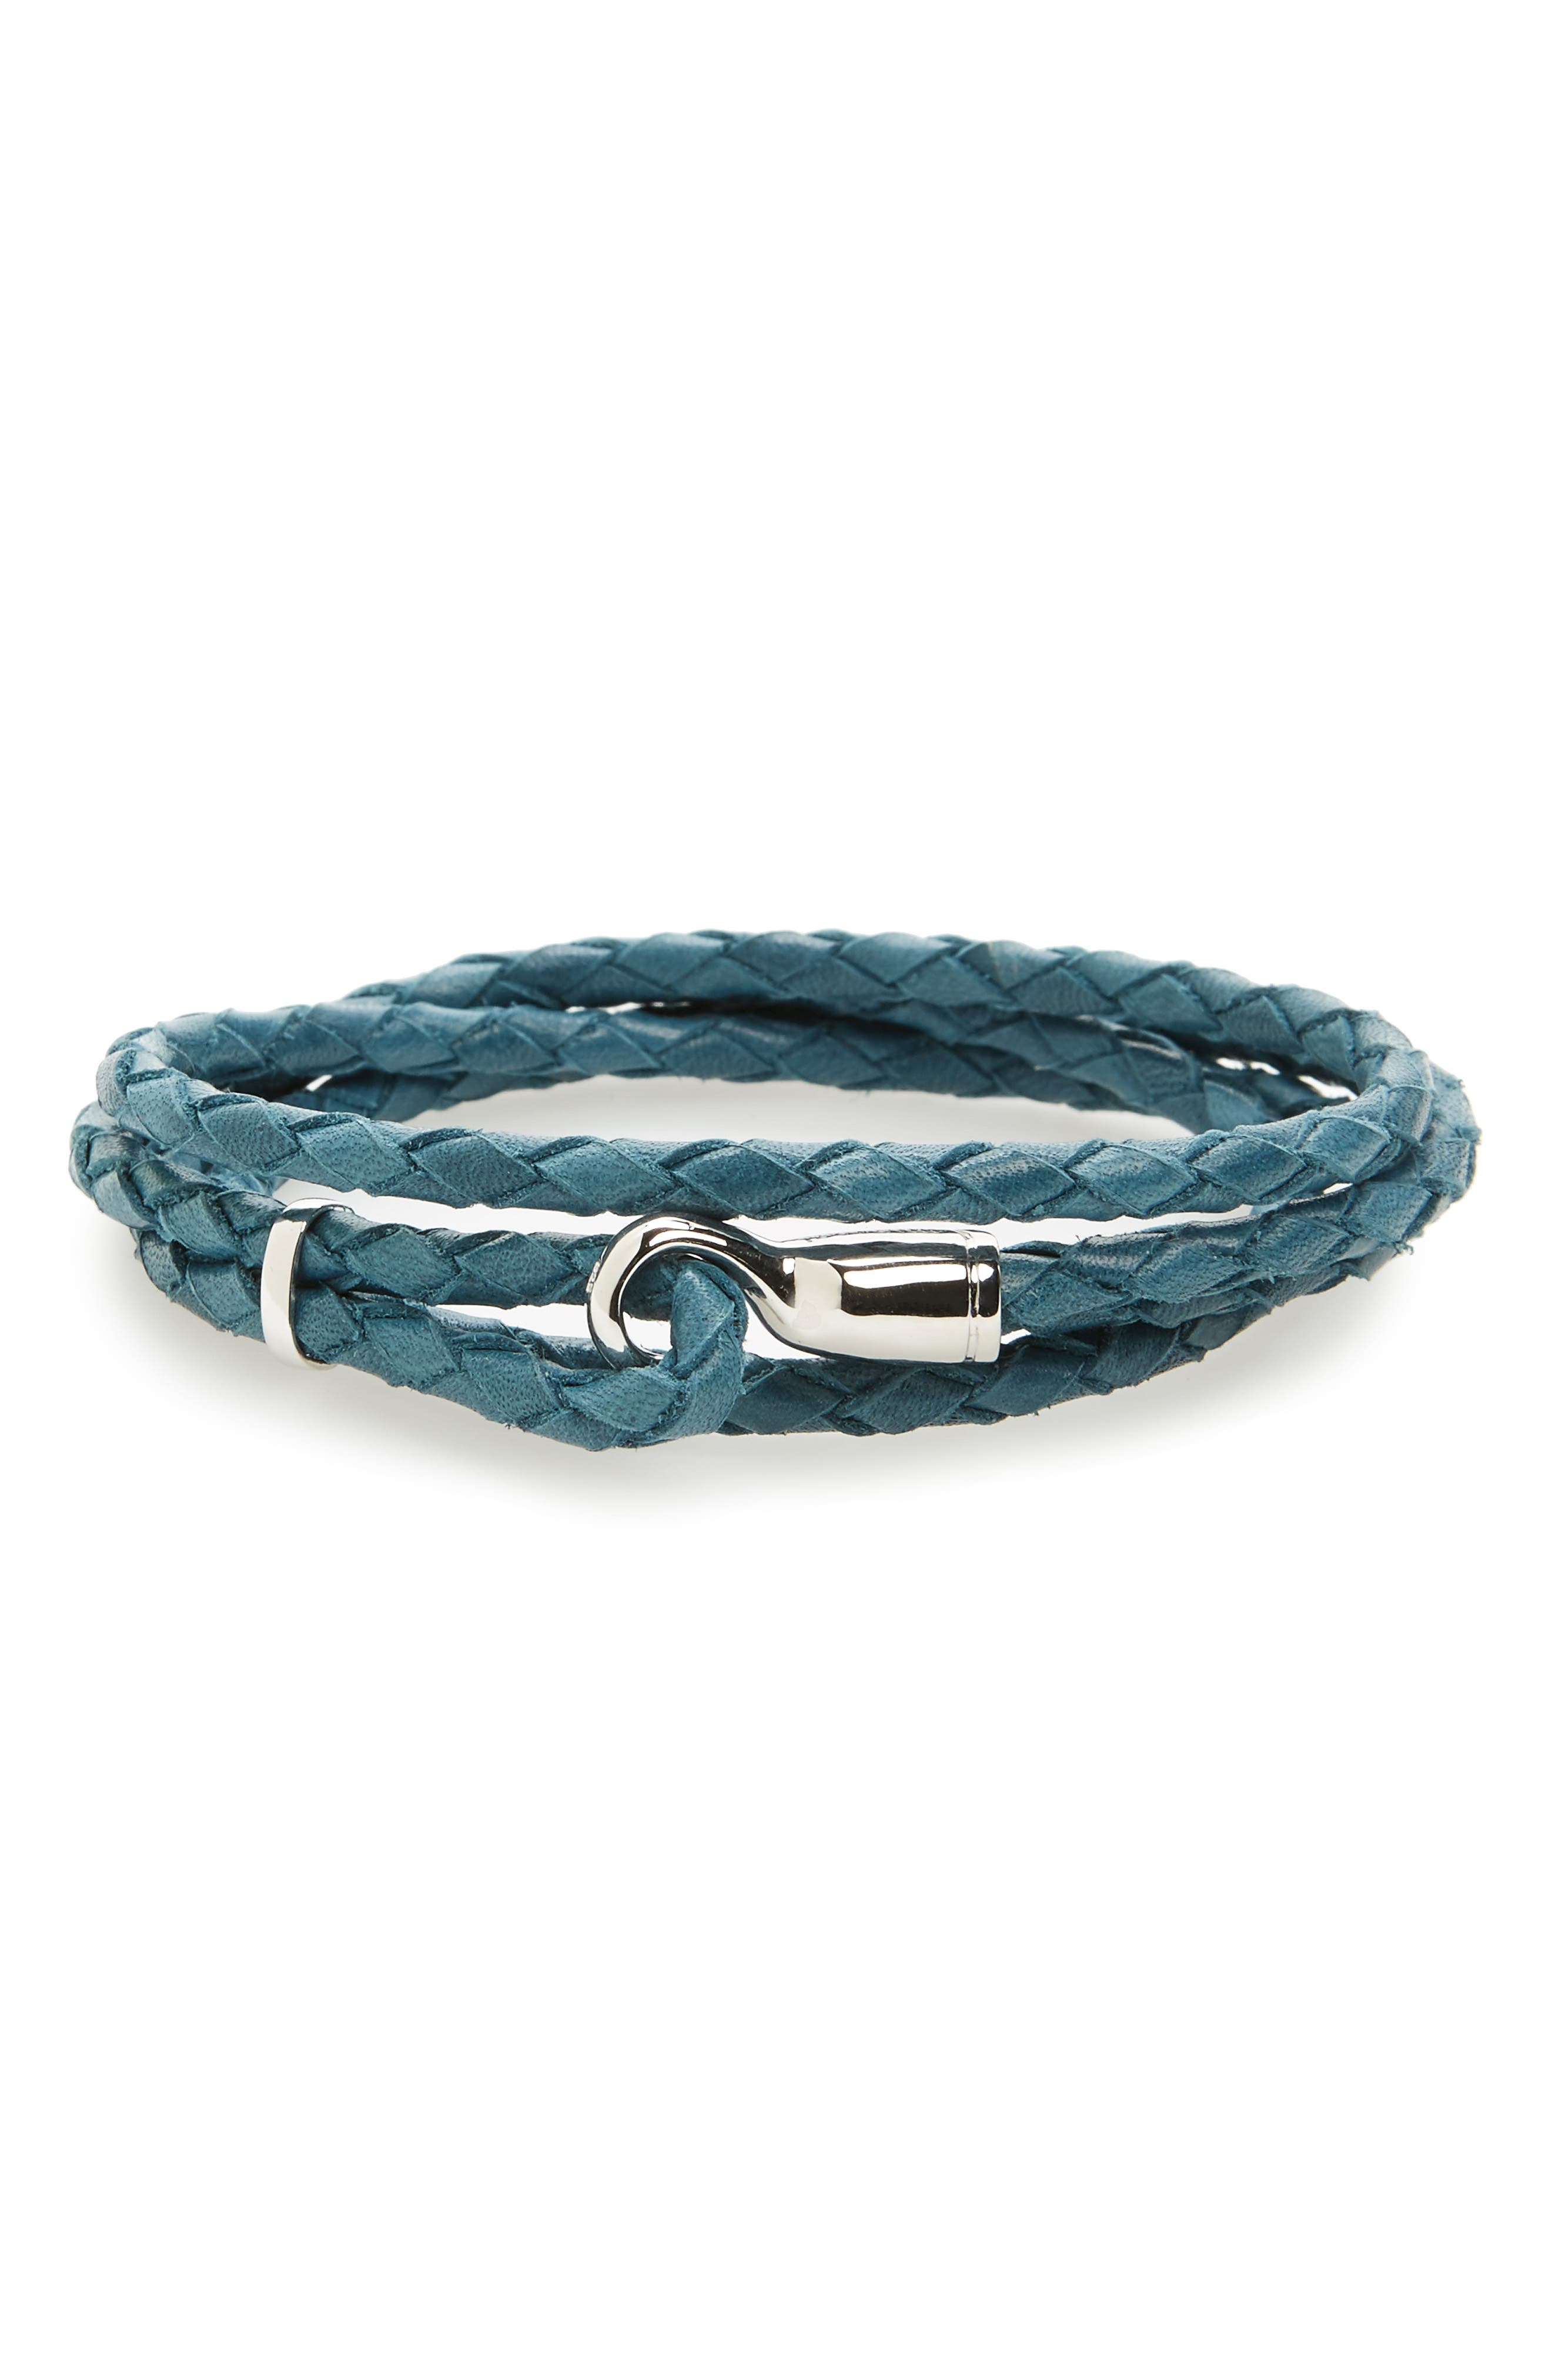 Alternate Image 1 Selected - Miansai Trice Braided Leather & Sterling Silver Bracelet